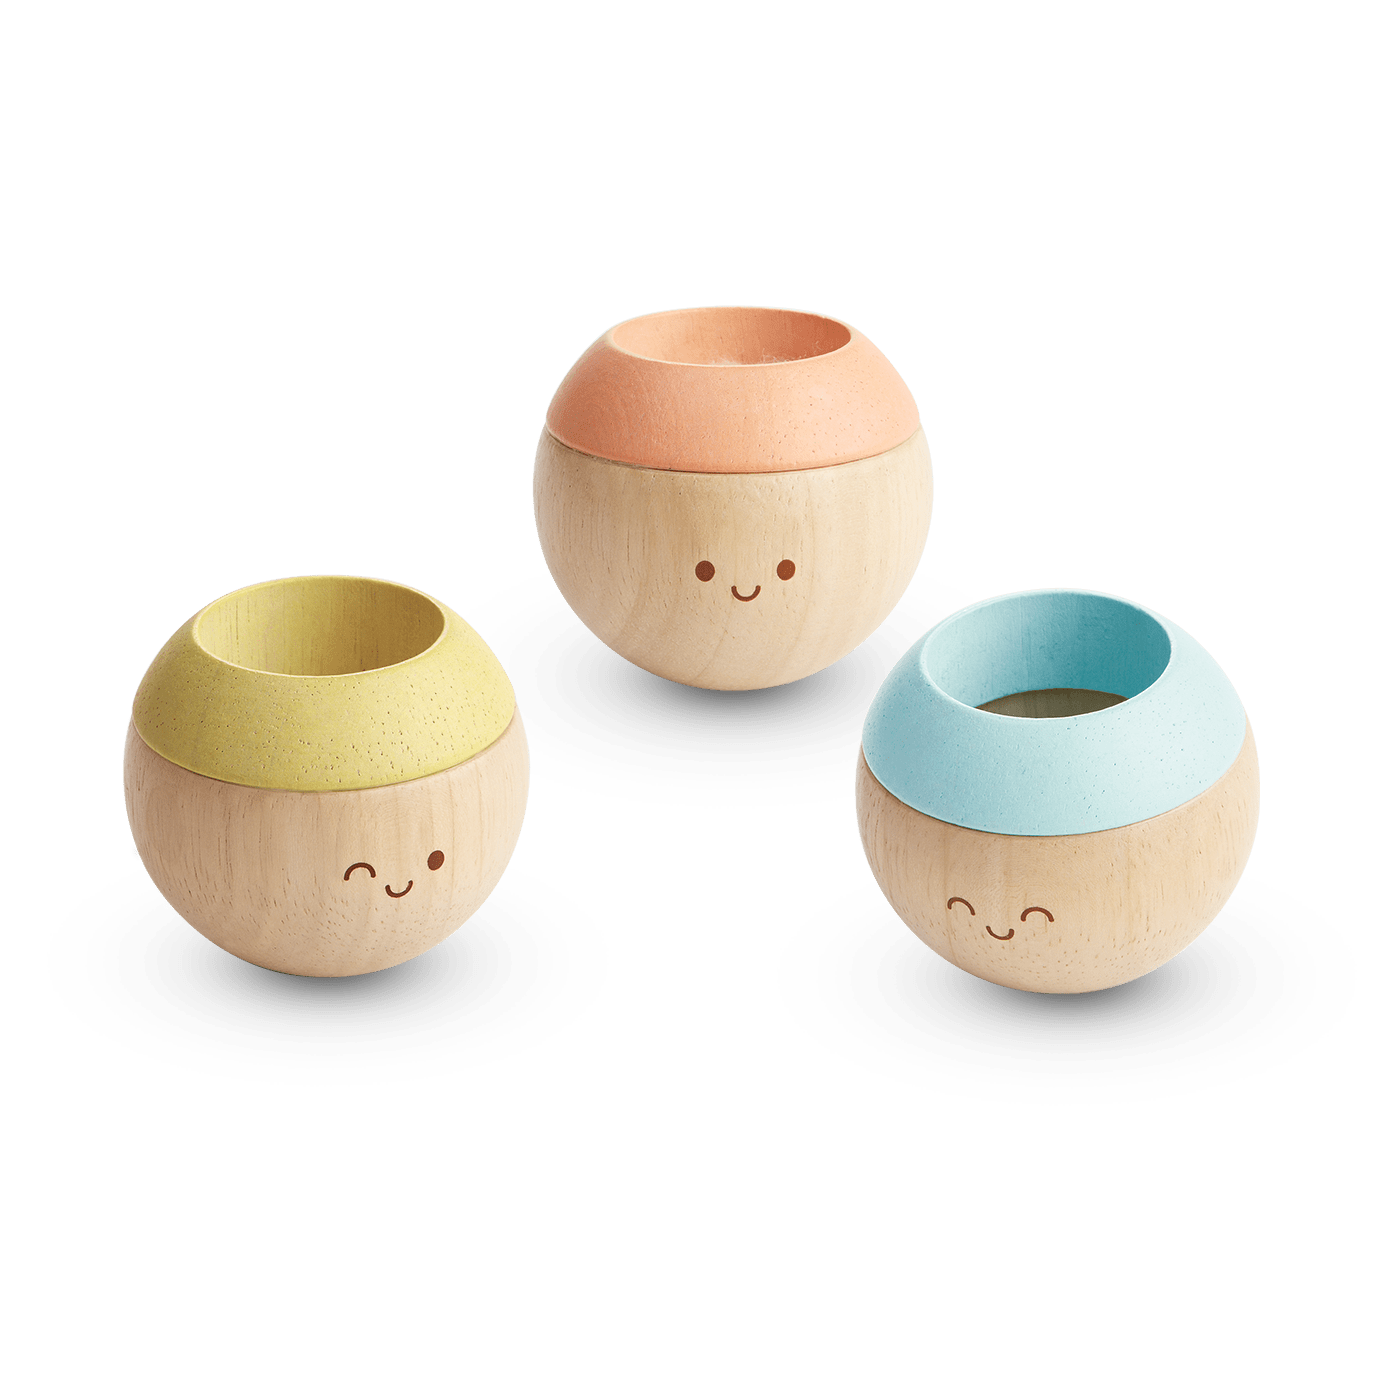 5258_PlanToys_SENSORY_TUMBLING_Babies_Visual_Fine_Motor_Coordination_Tactile_6m_Wooden_toys_Education_toys_Safety_Toys_Non-toxic_0.png